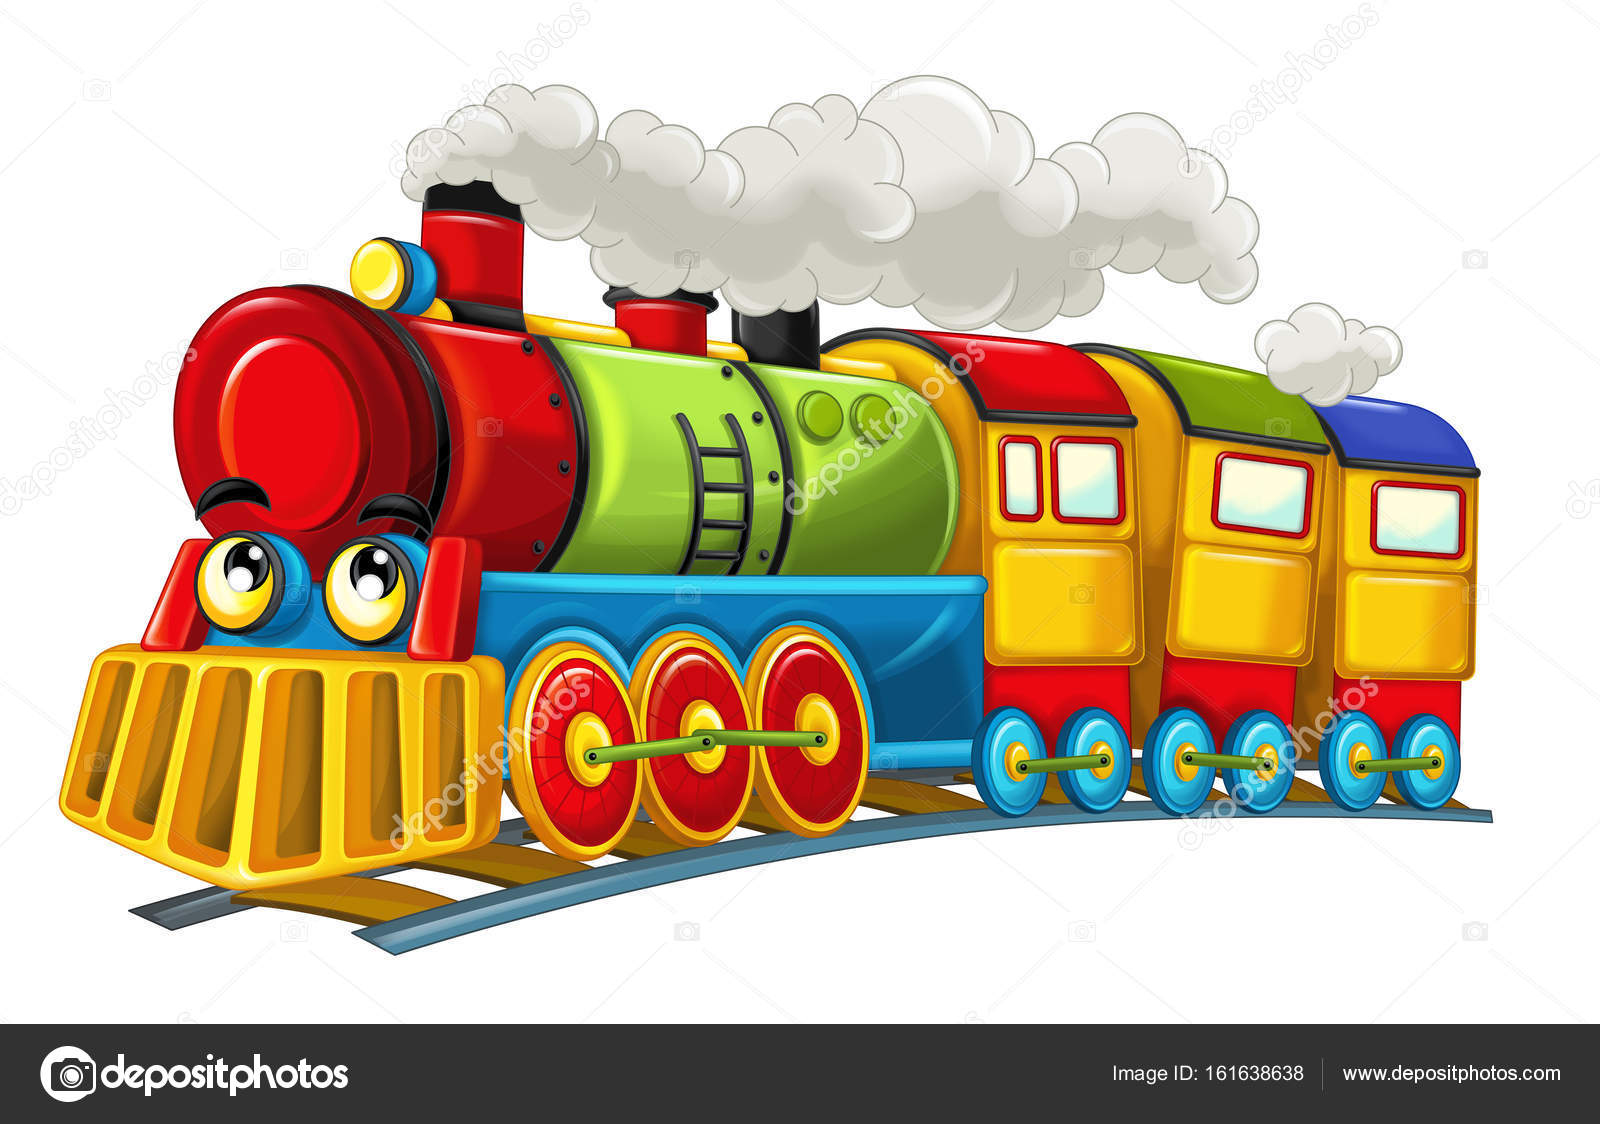 Dessin anim dr le la recherche de train vapeur photographie illustrator hft 161638638 - Train dessin anime chuggington ...